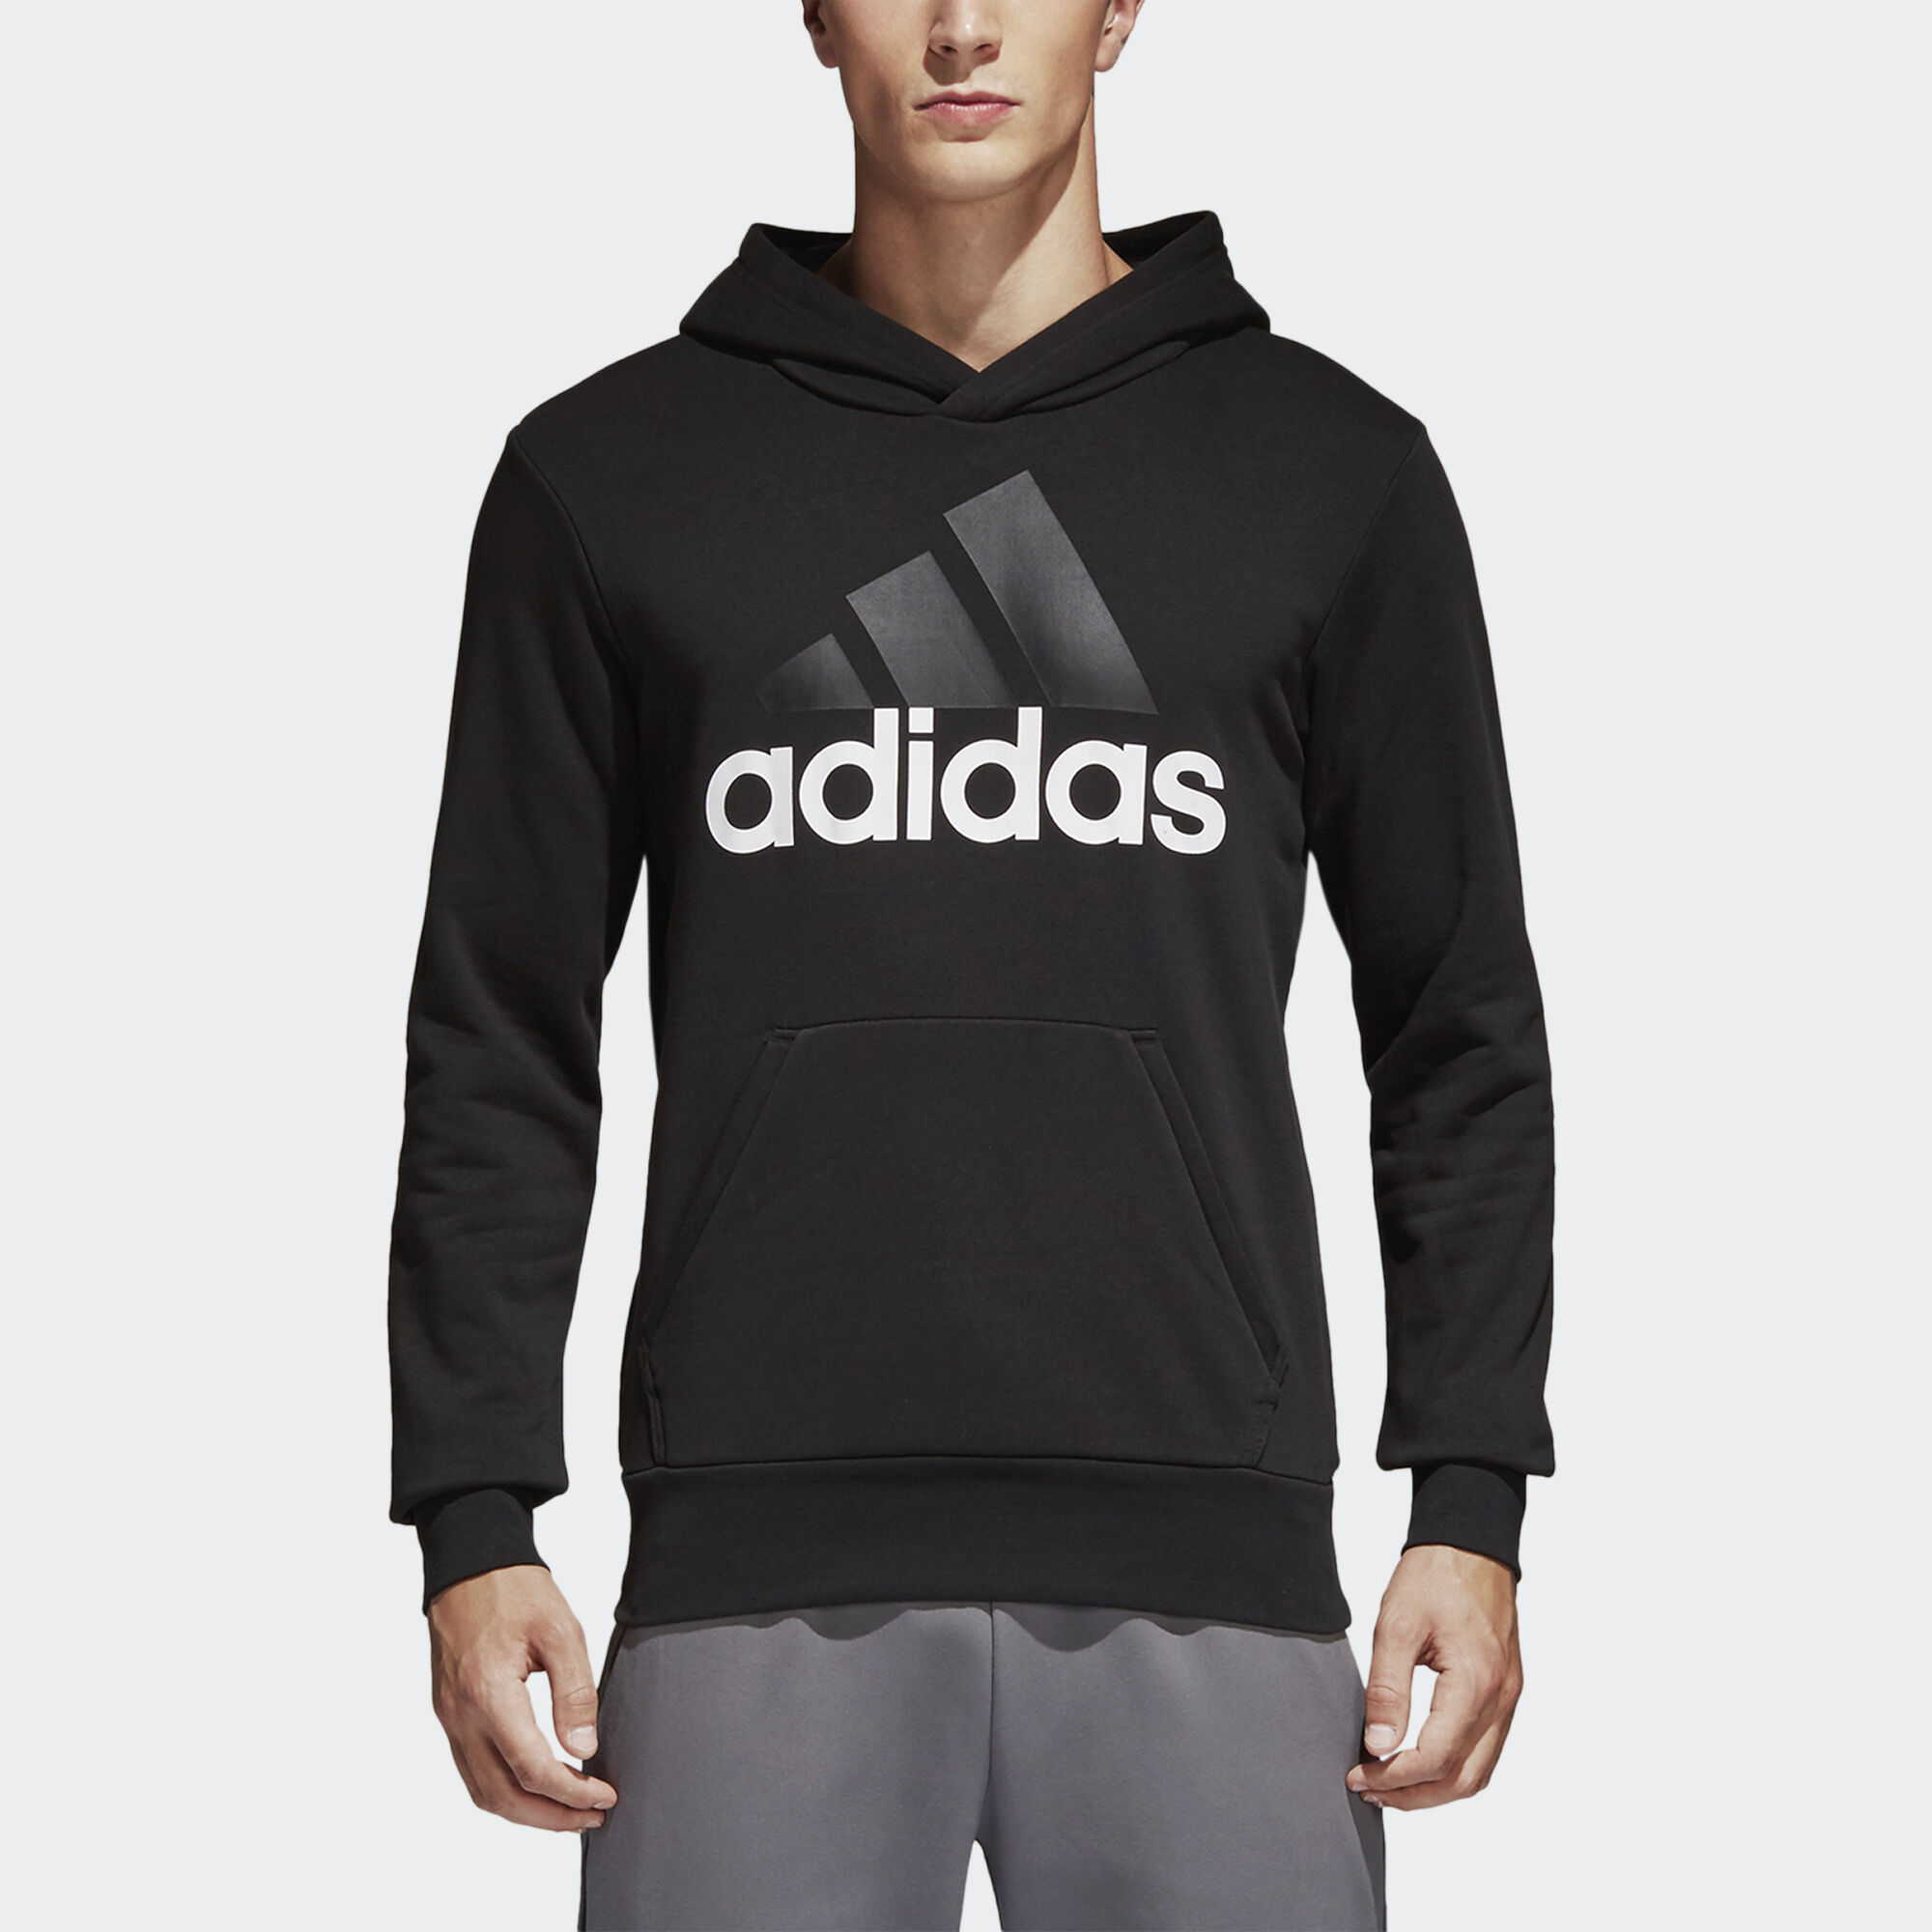 adidas black and white hoodie